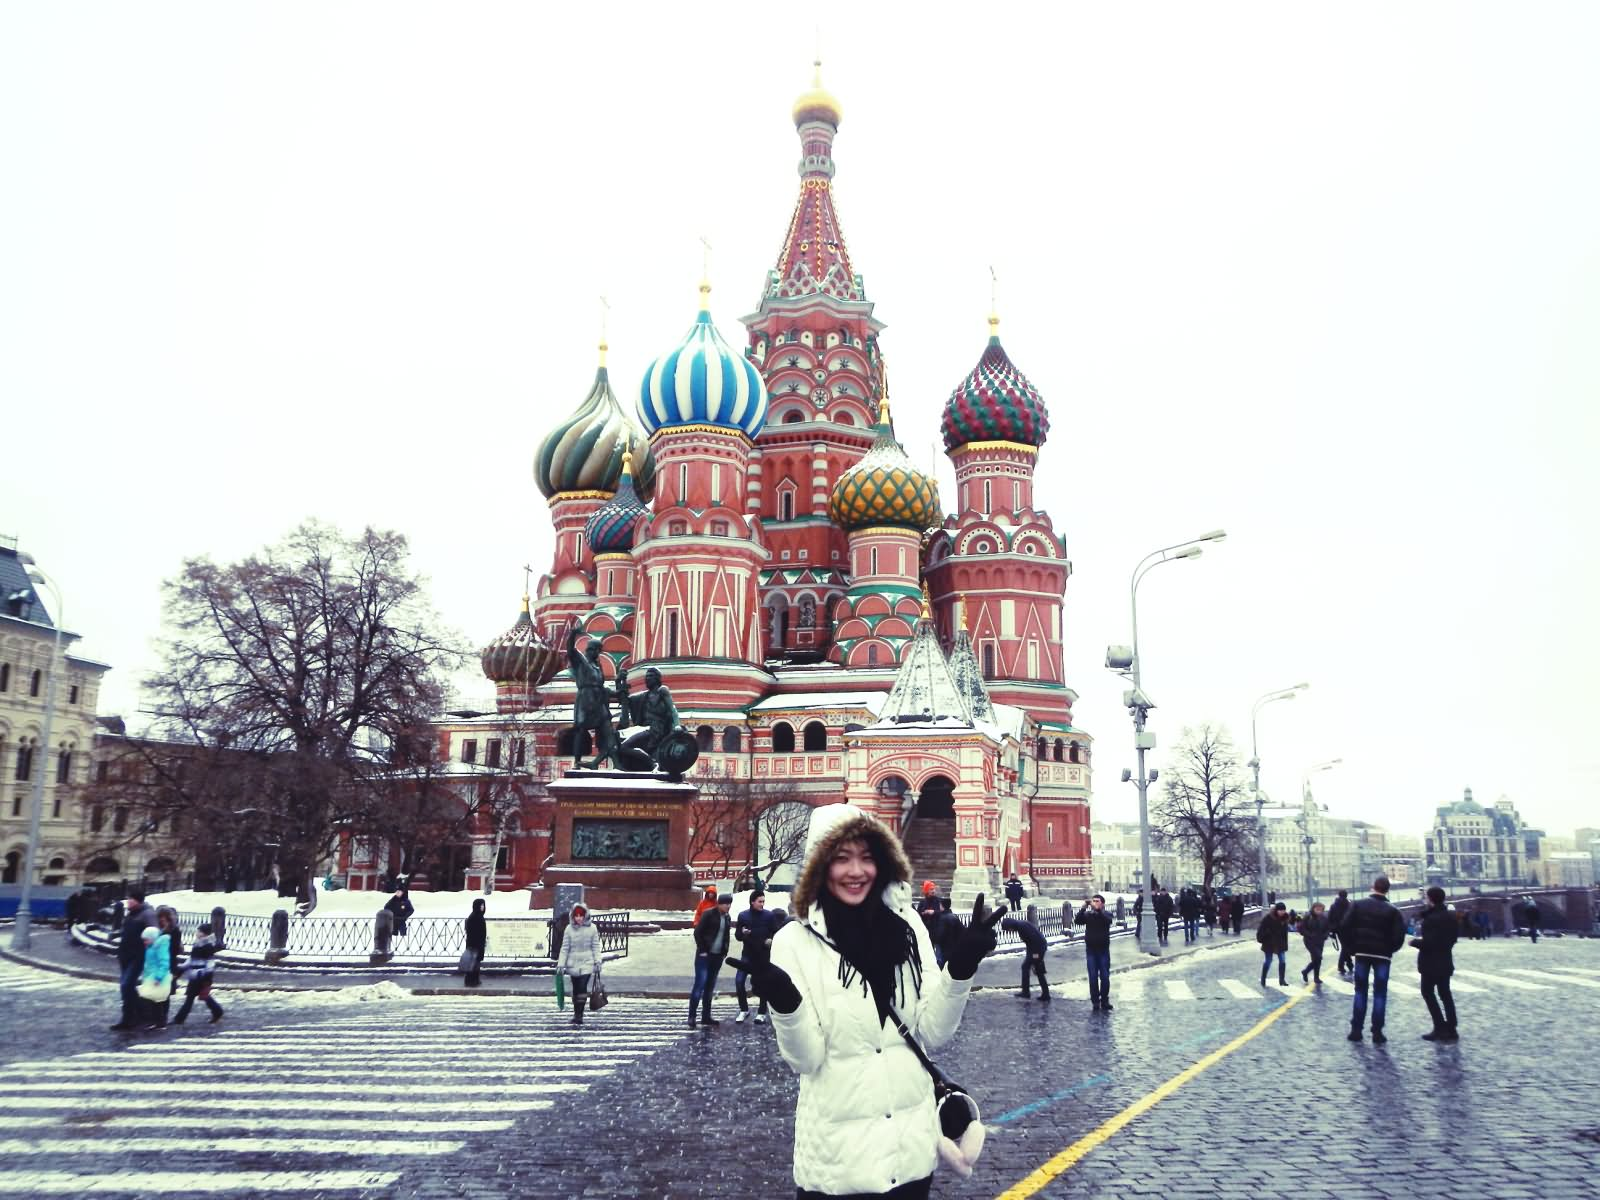 kremlin dating Kremlin's best free dating site 100% free online dating for kremlin singles at mingle2com our free personal ads are full of single women and men in kremlin looking for serious relationships, a little online flirtation, or new friends to go out with start meeting singles in kremlin today with our free online personals and free kremlin chat.